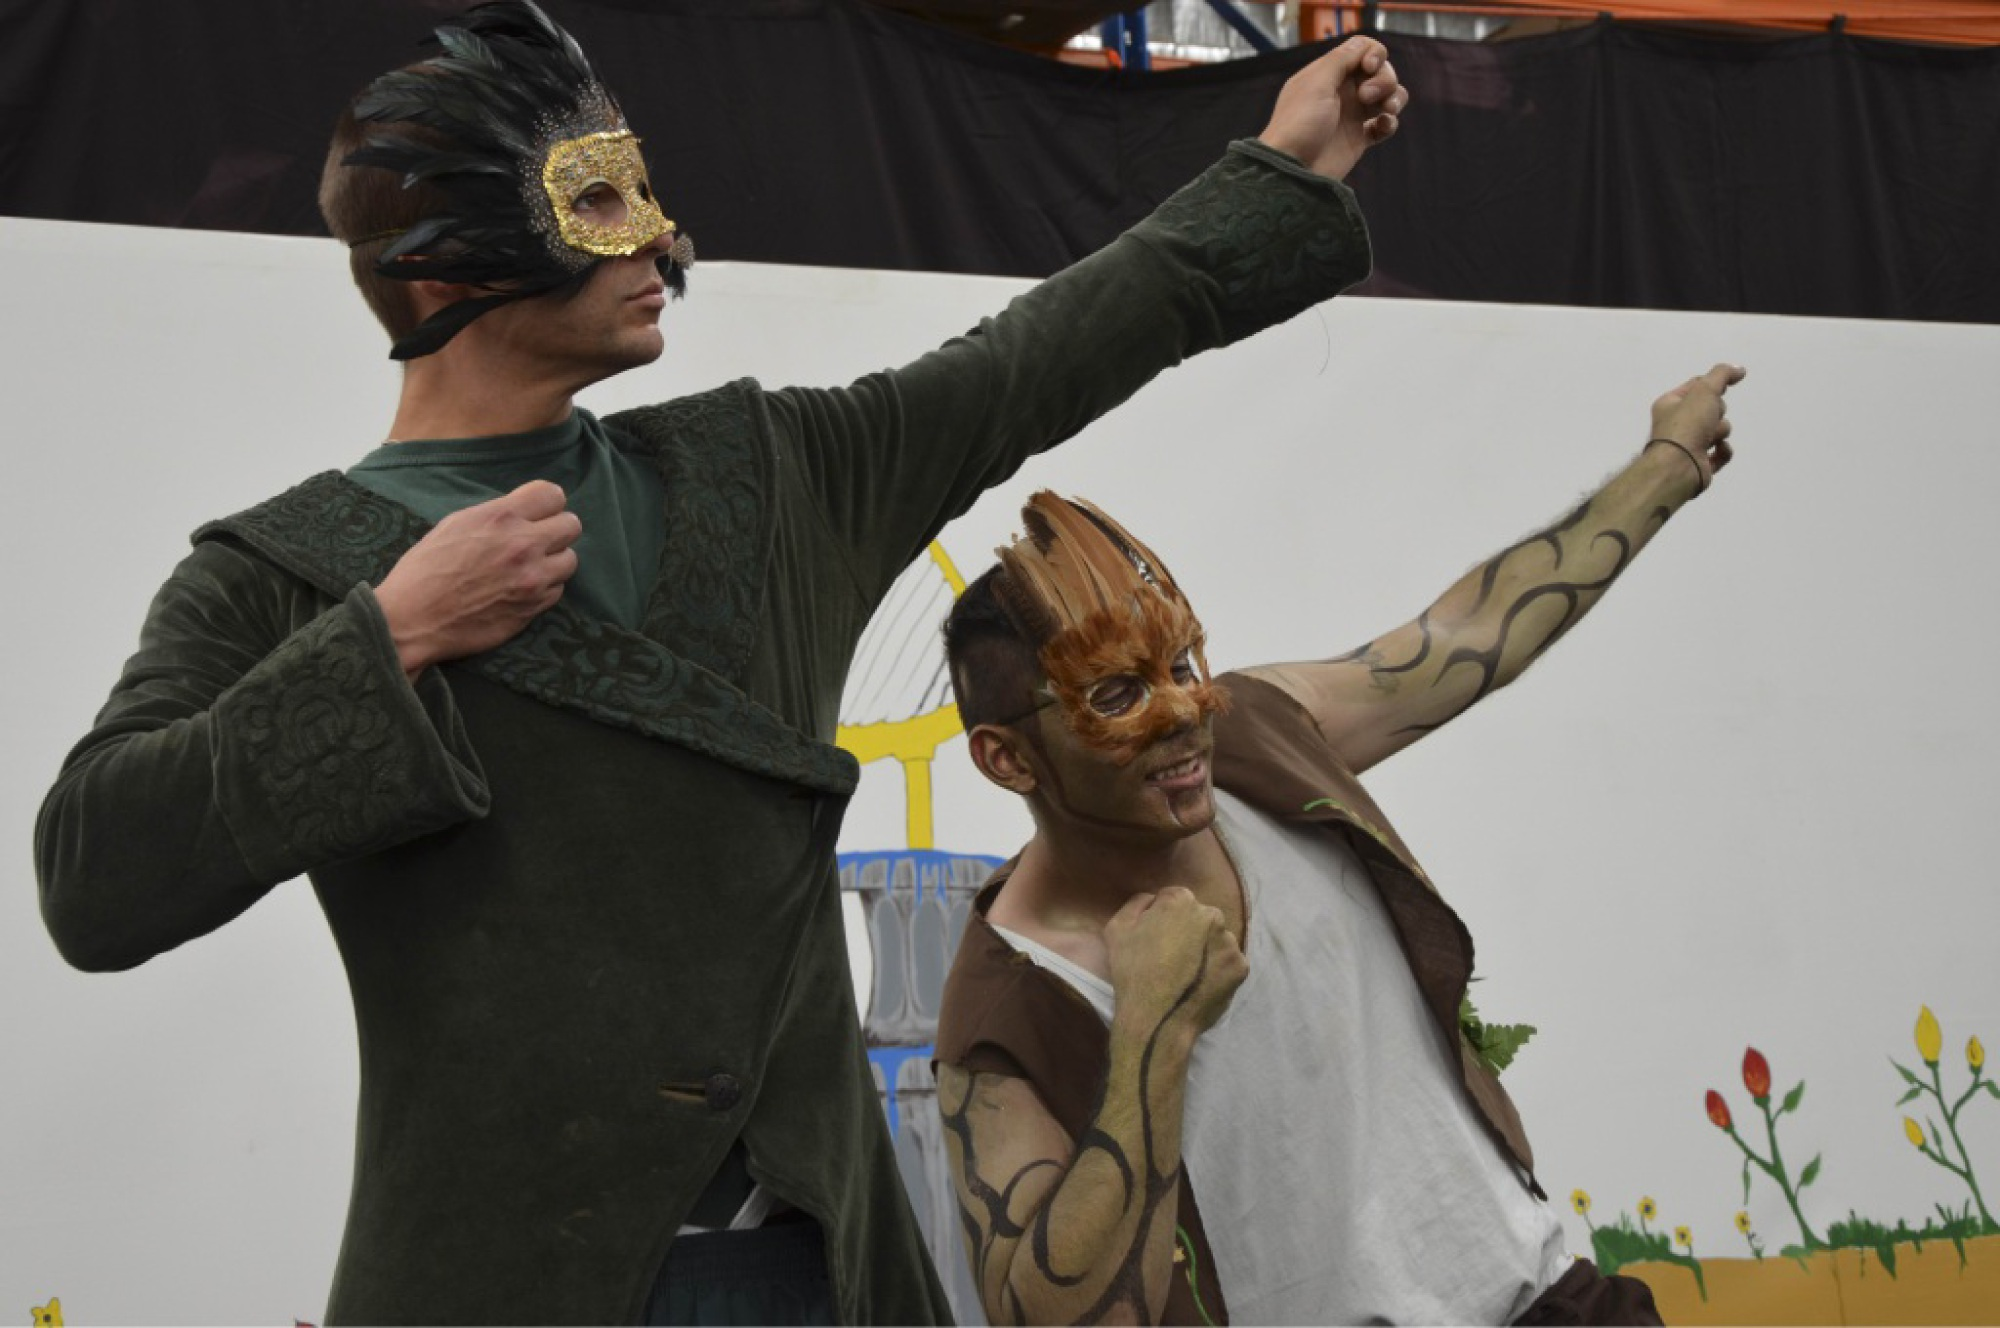 Acacia Prisoners performed A Midsummer Night's Dream at Acacia Prison in November last year, as part of a rehabilitation program.